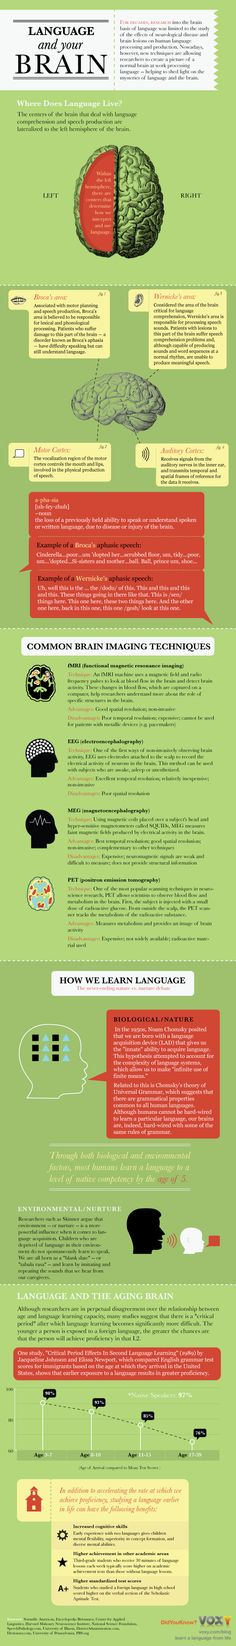 Richard Yates I have a brain injury mines Anoxic brain injury ;Infographic: Language and Your Brain - explains aphasia that can occur from a stroke or other brain injury Speech Language Pathology, Speech And Language, Second Language, English Language, Learning Tips, Mobile Learning, Aphasia, Dyslexia, Anatomy And Physiology